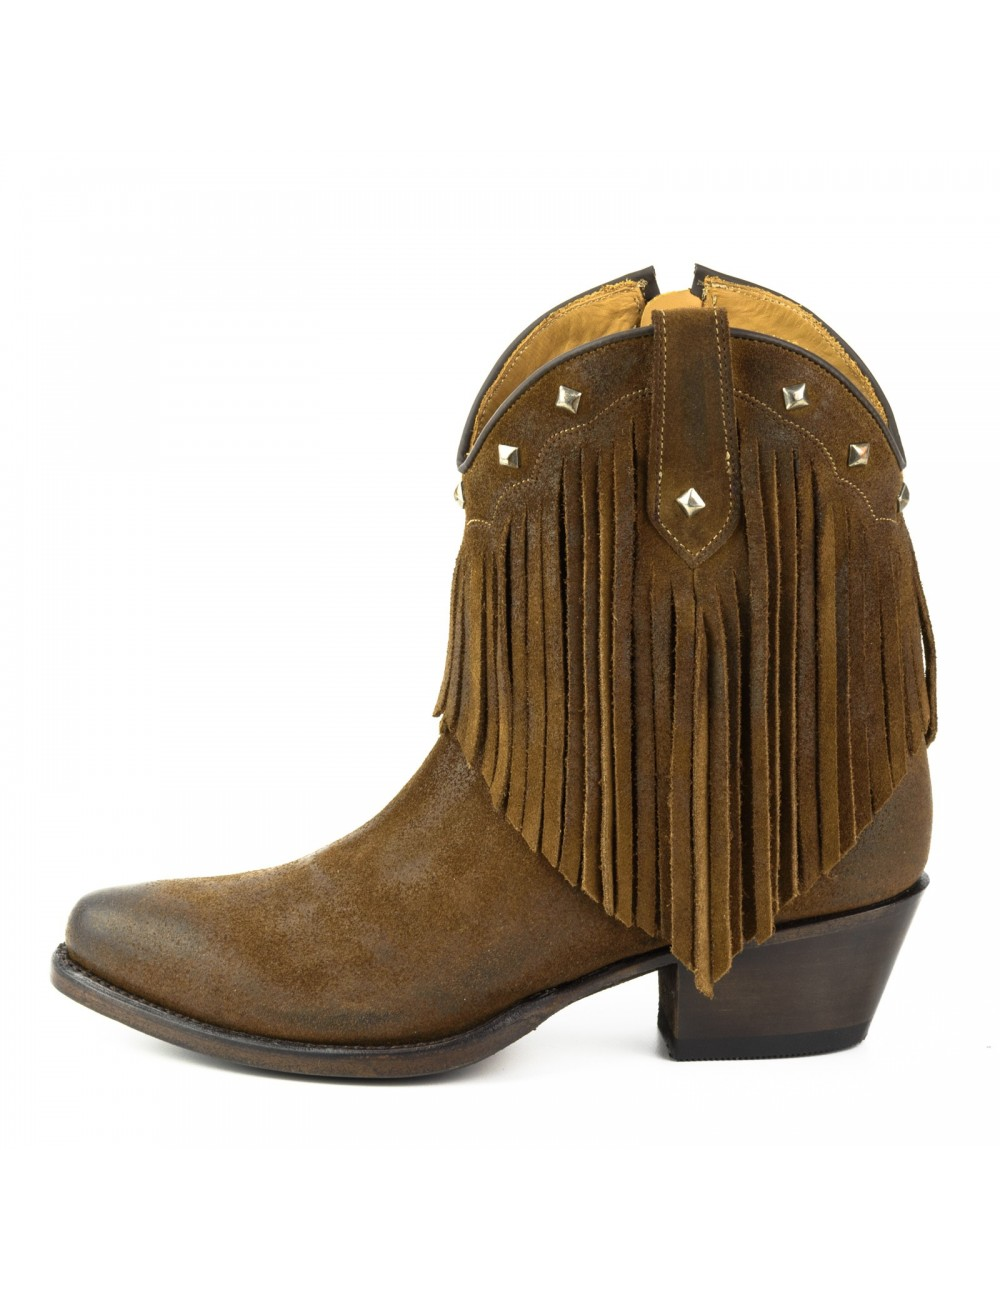 Bottines femme - Bottines femme cowboy franges